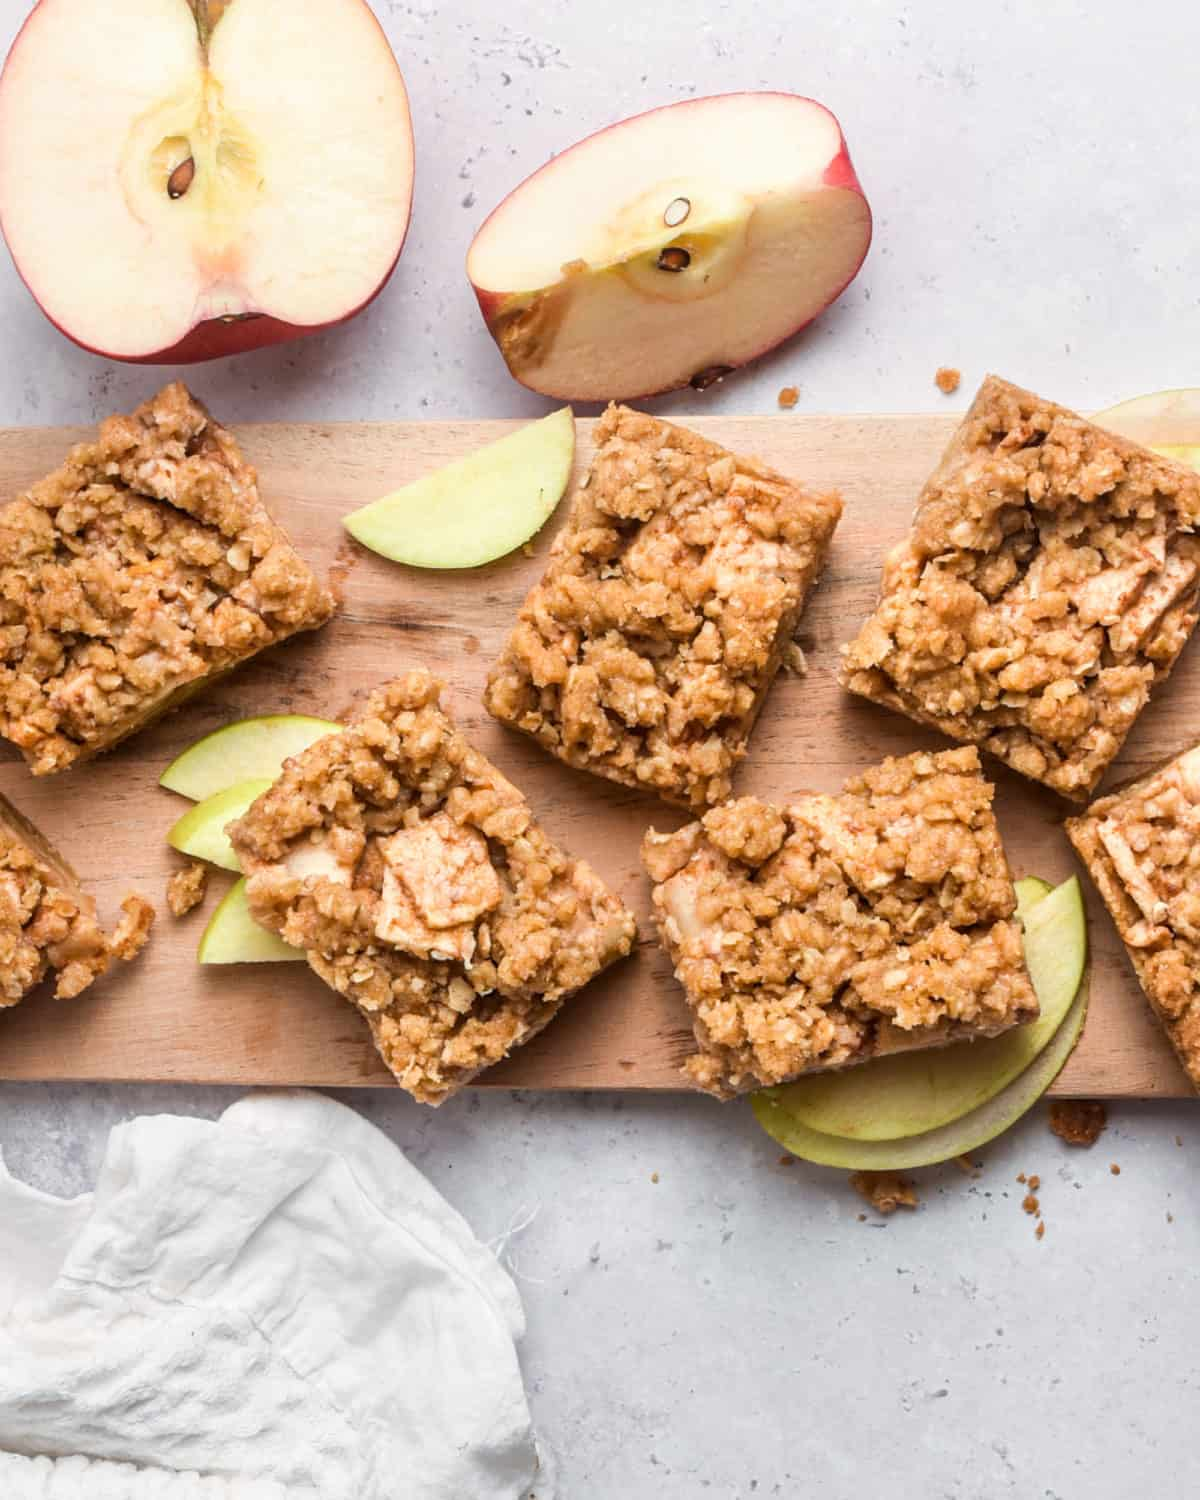 An overhead shot of several apple bars on a cutting board.